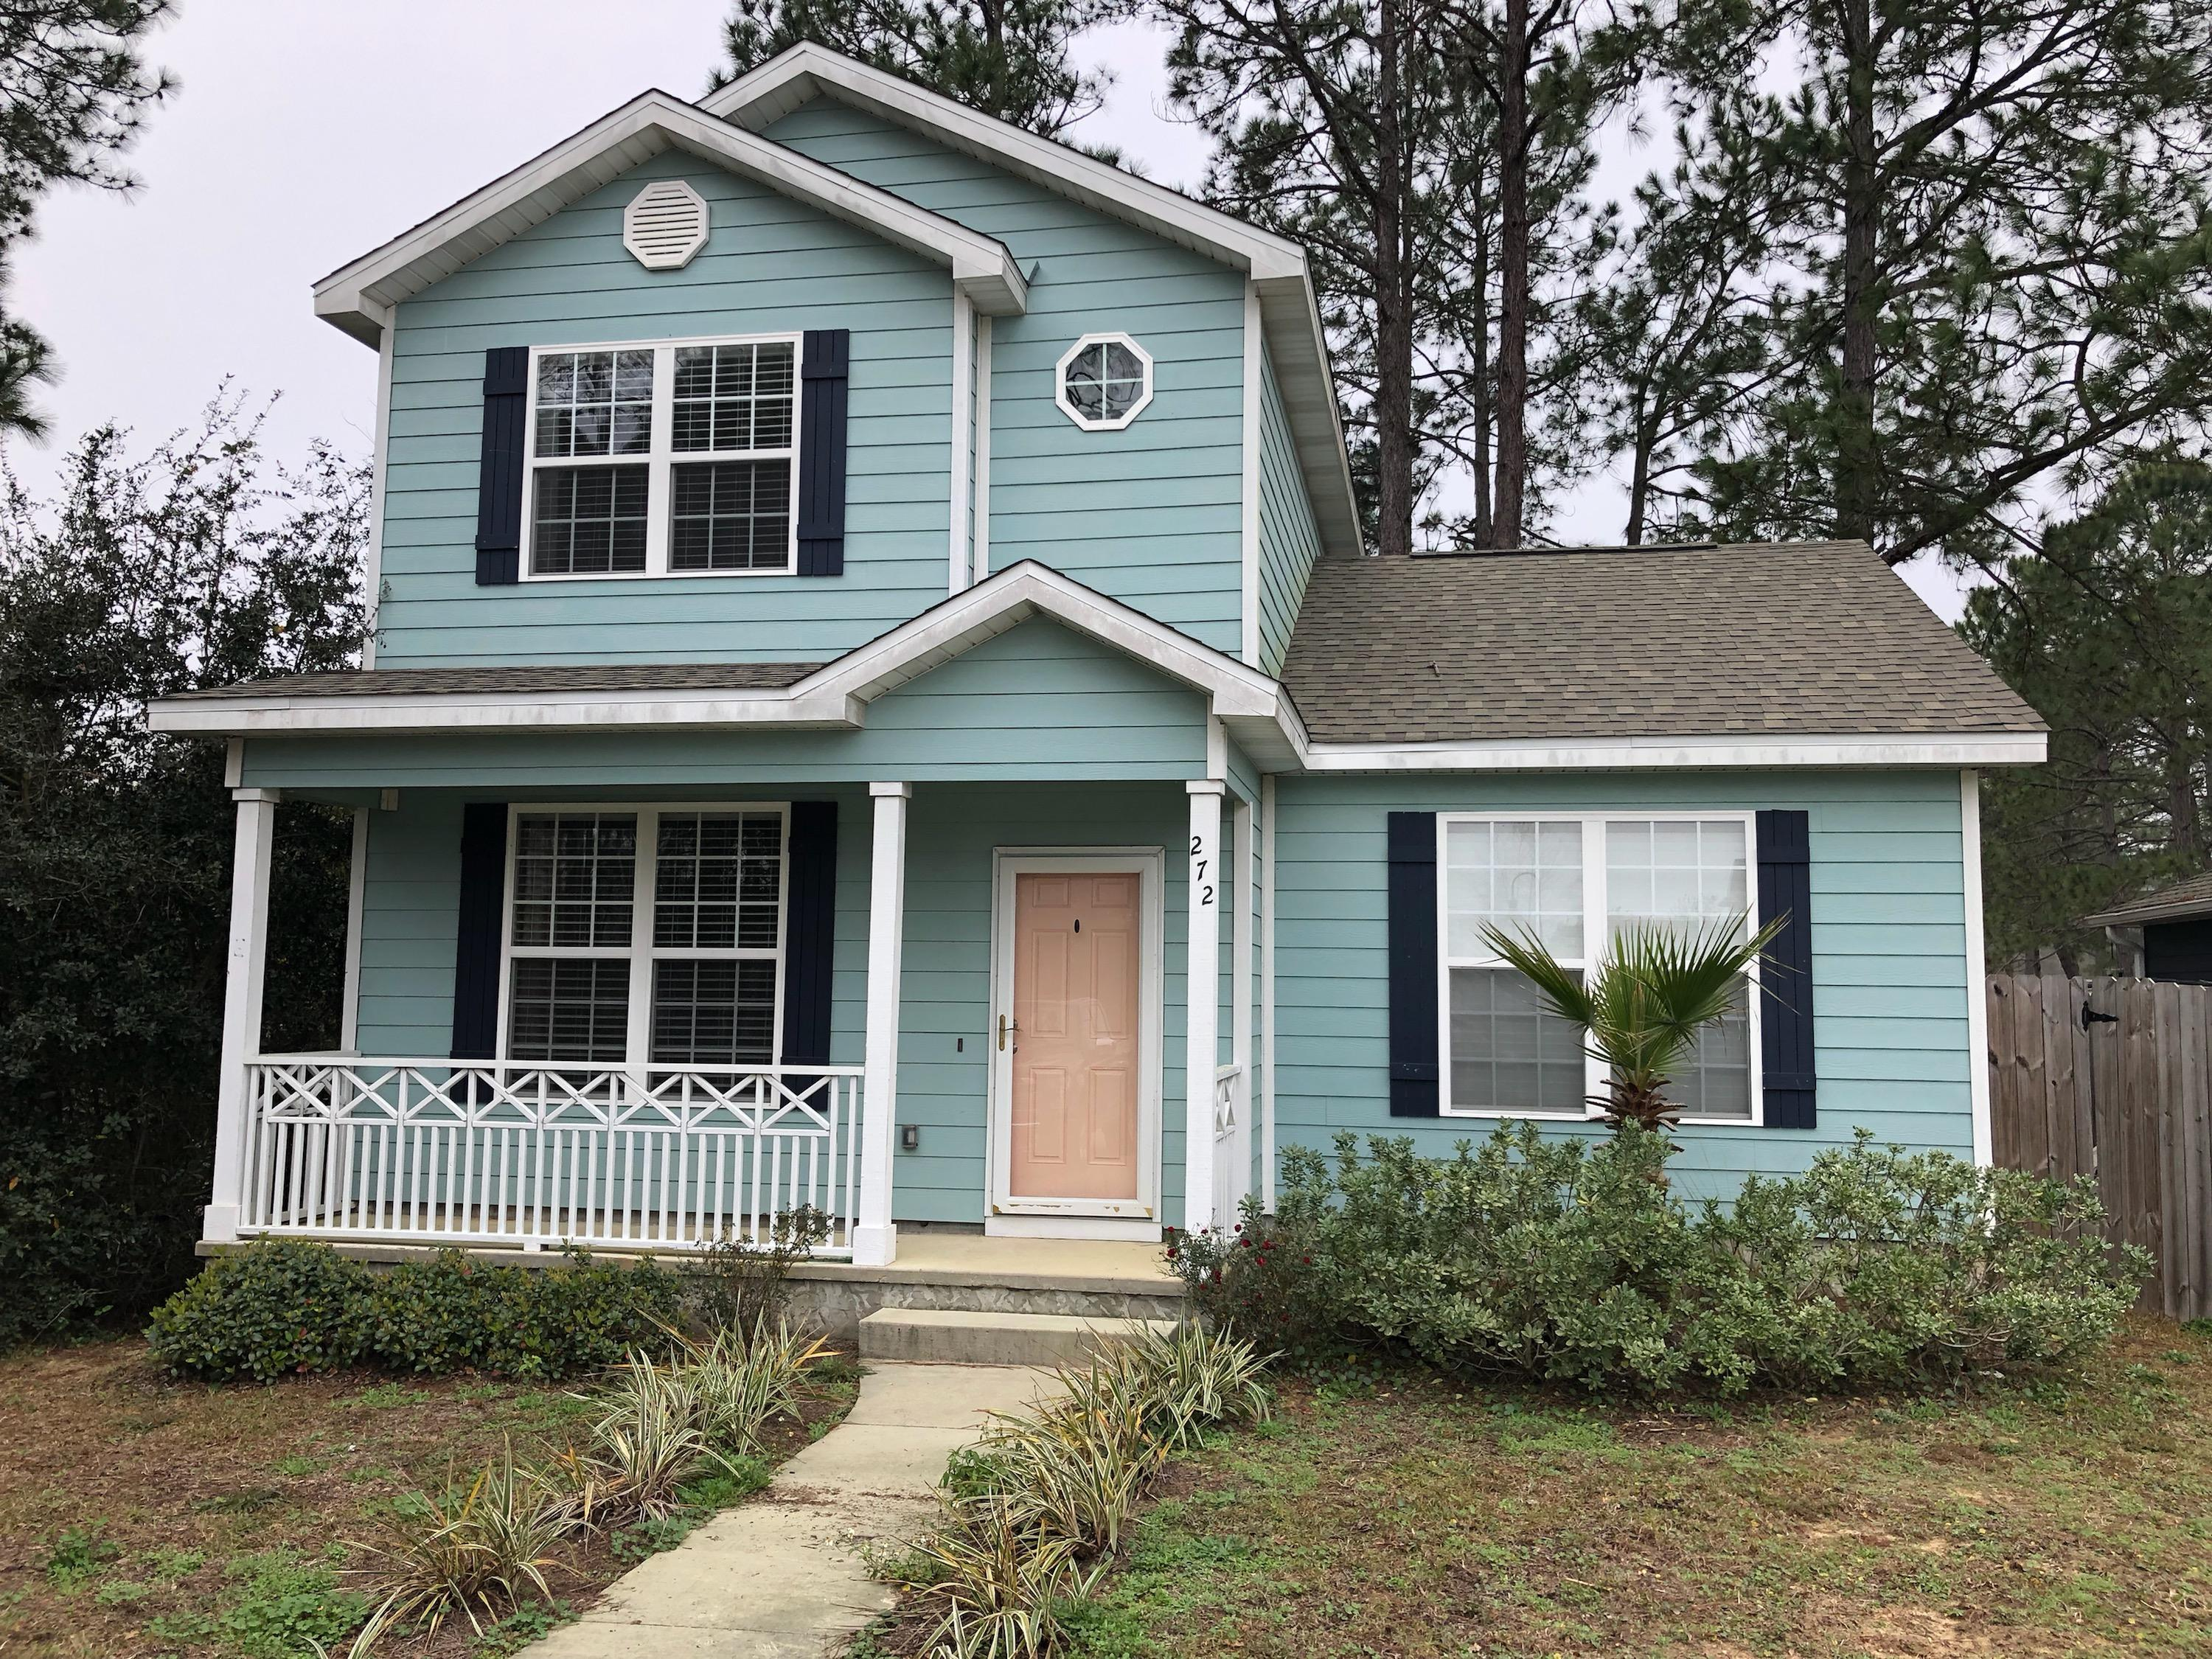 3 bedroom, 2 bath Florida cottage located in a great neighborhood.